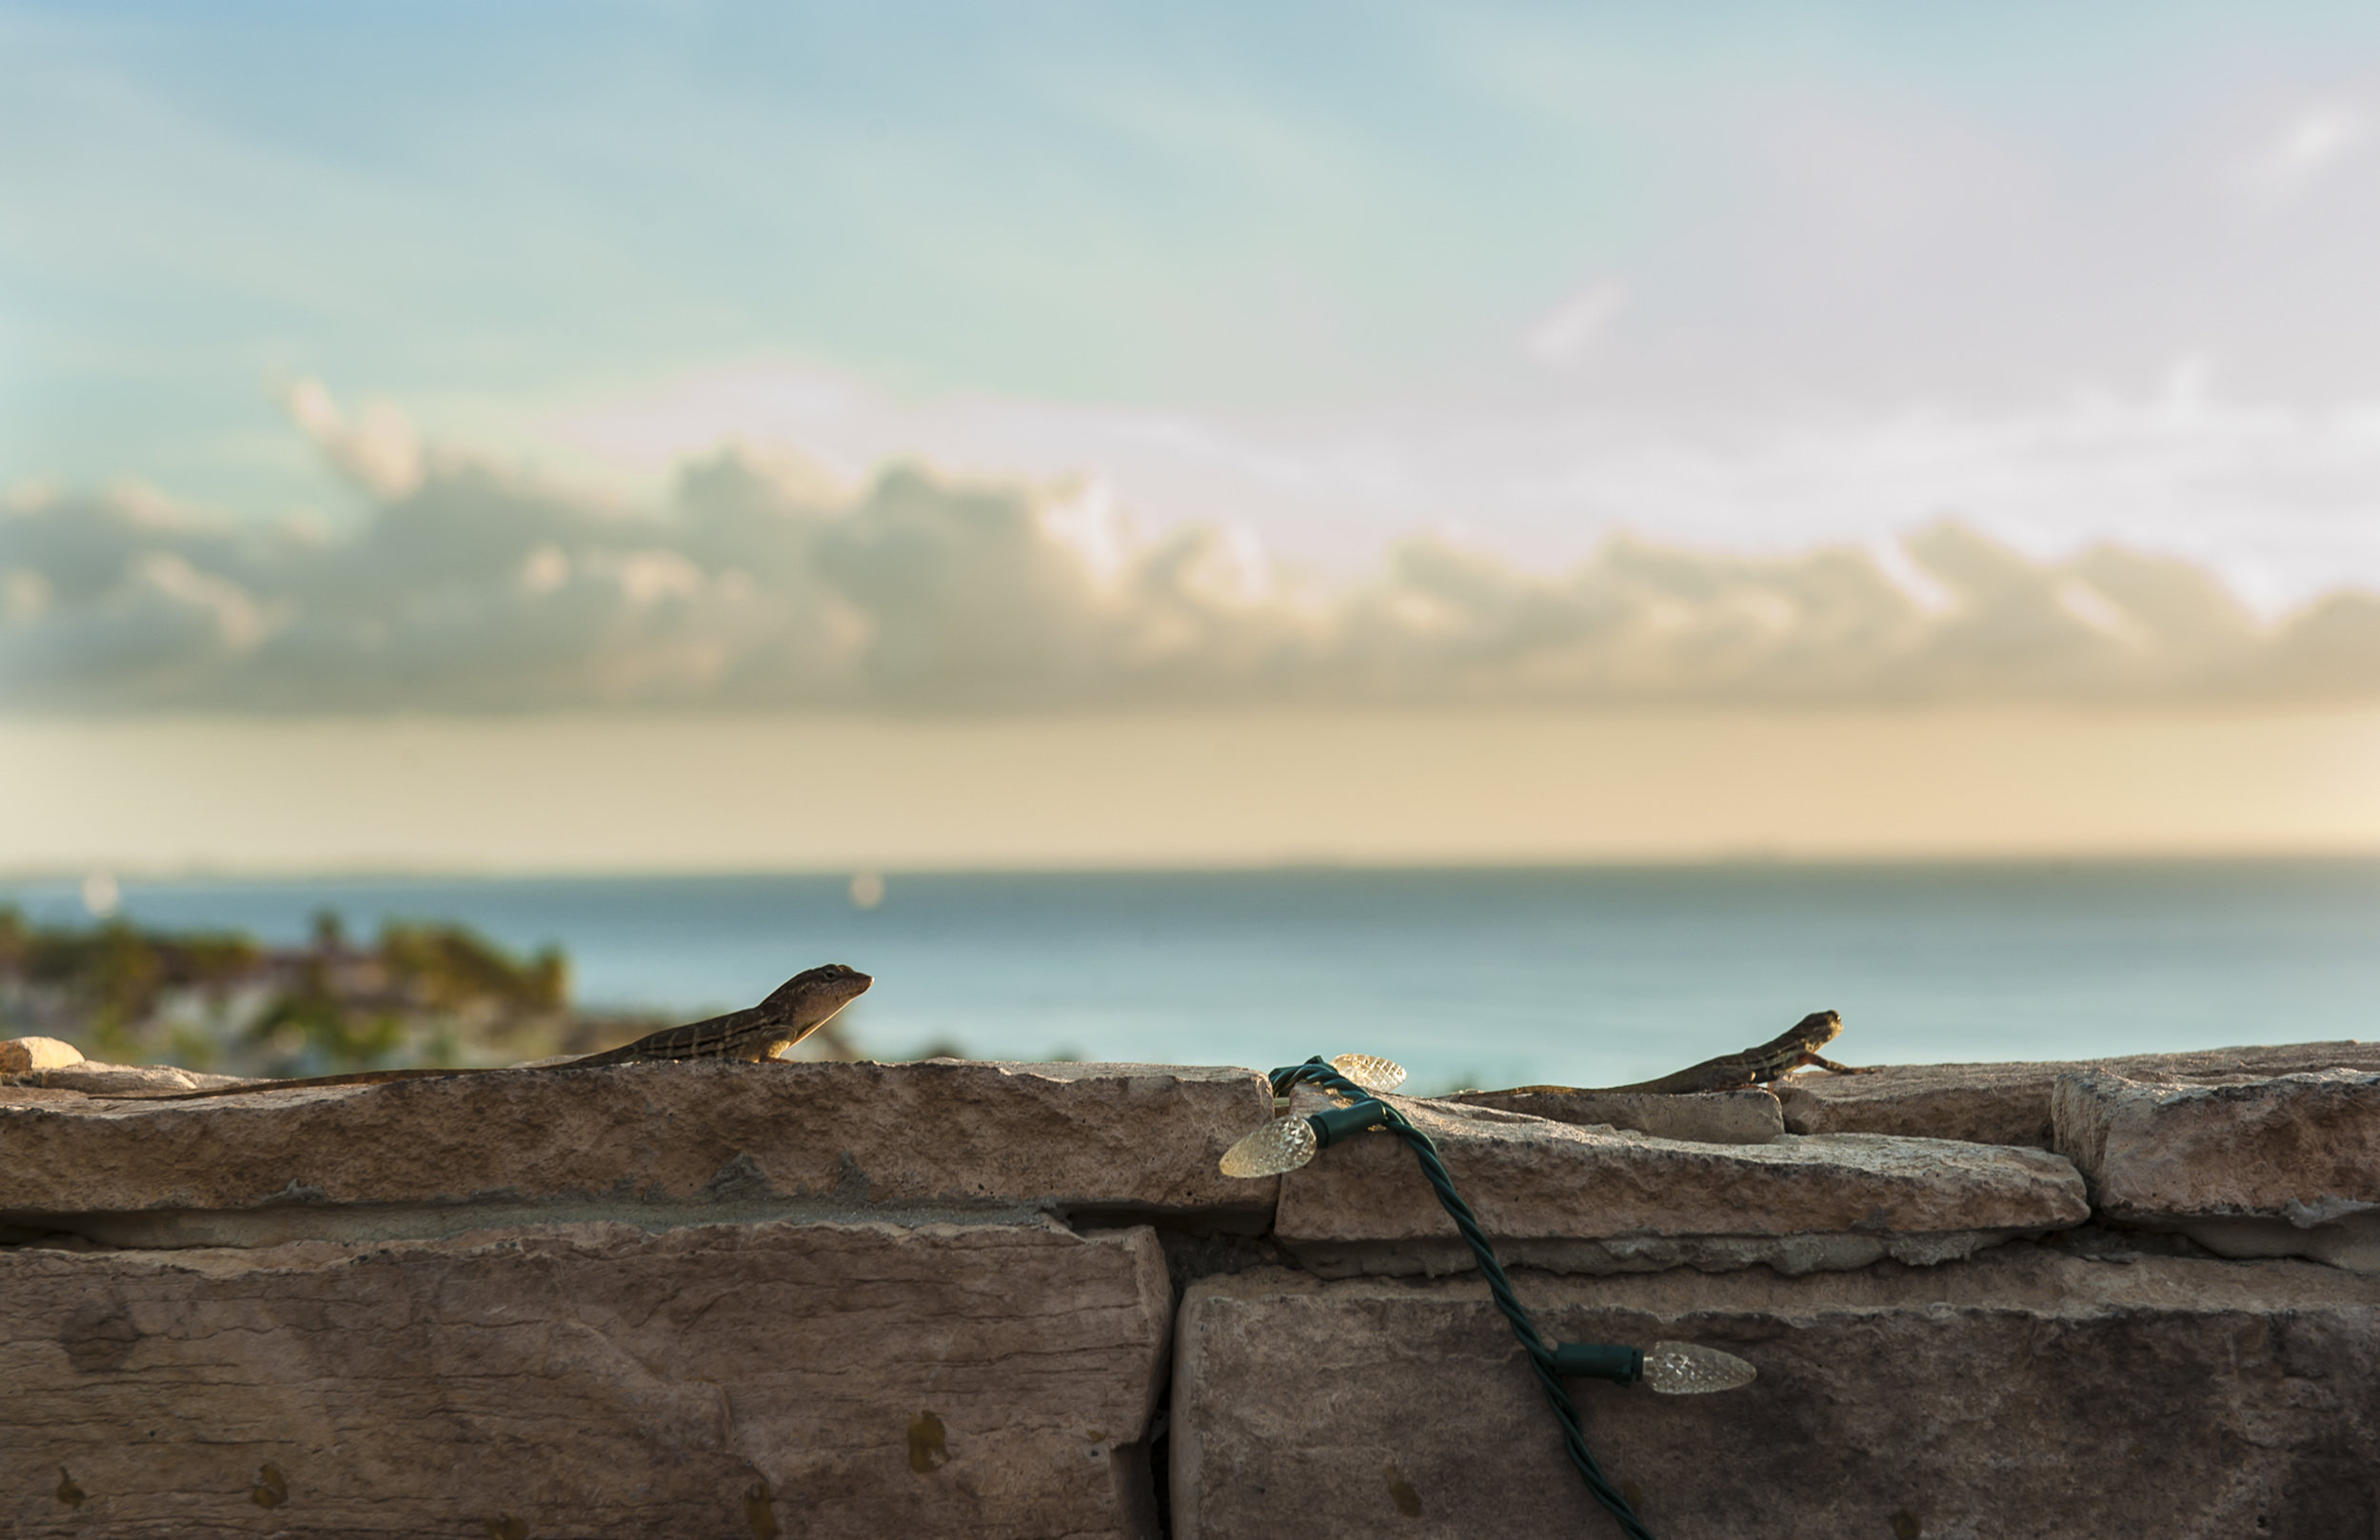 Aruba Lizards 11x17 - mark campbell photography-001.jpg